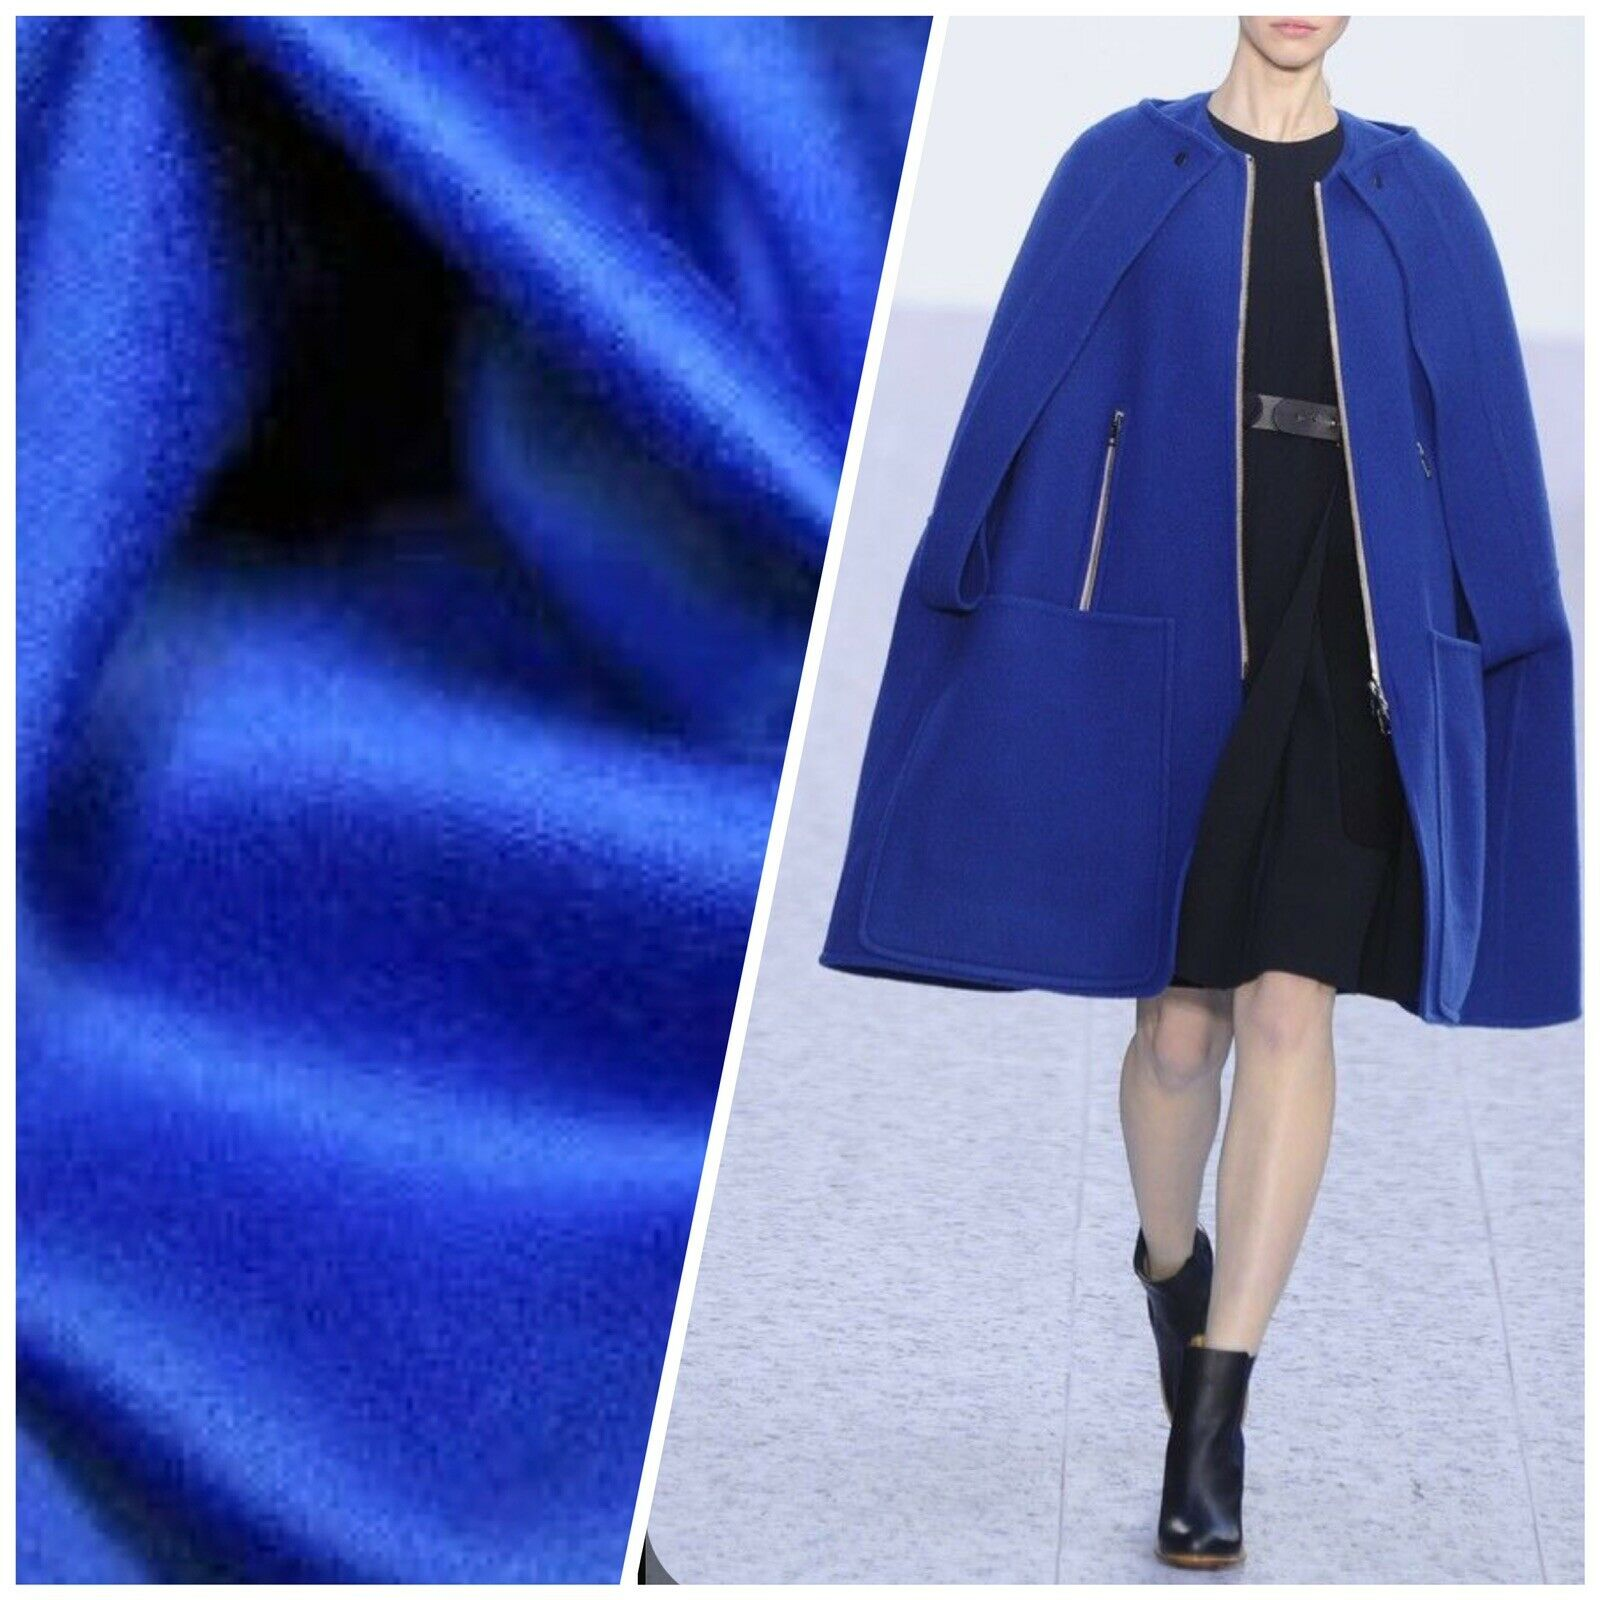 NEW Designer 100% Wool Blue Coat Fabric- By The Yard